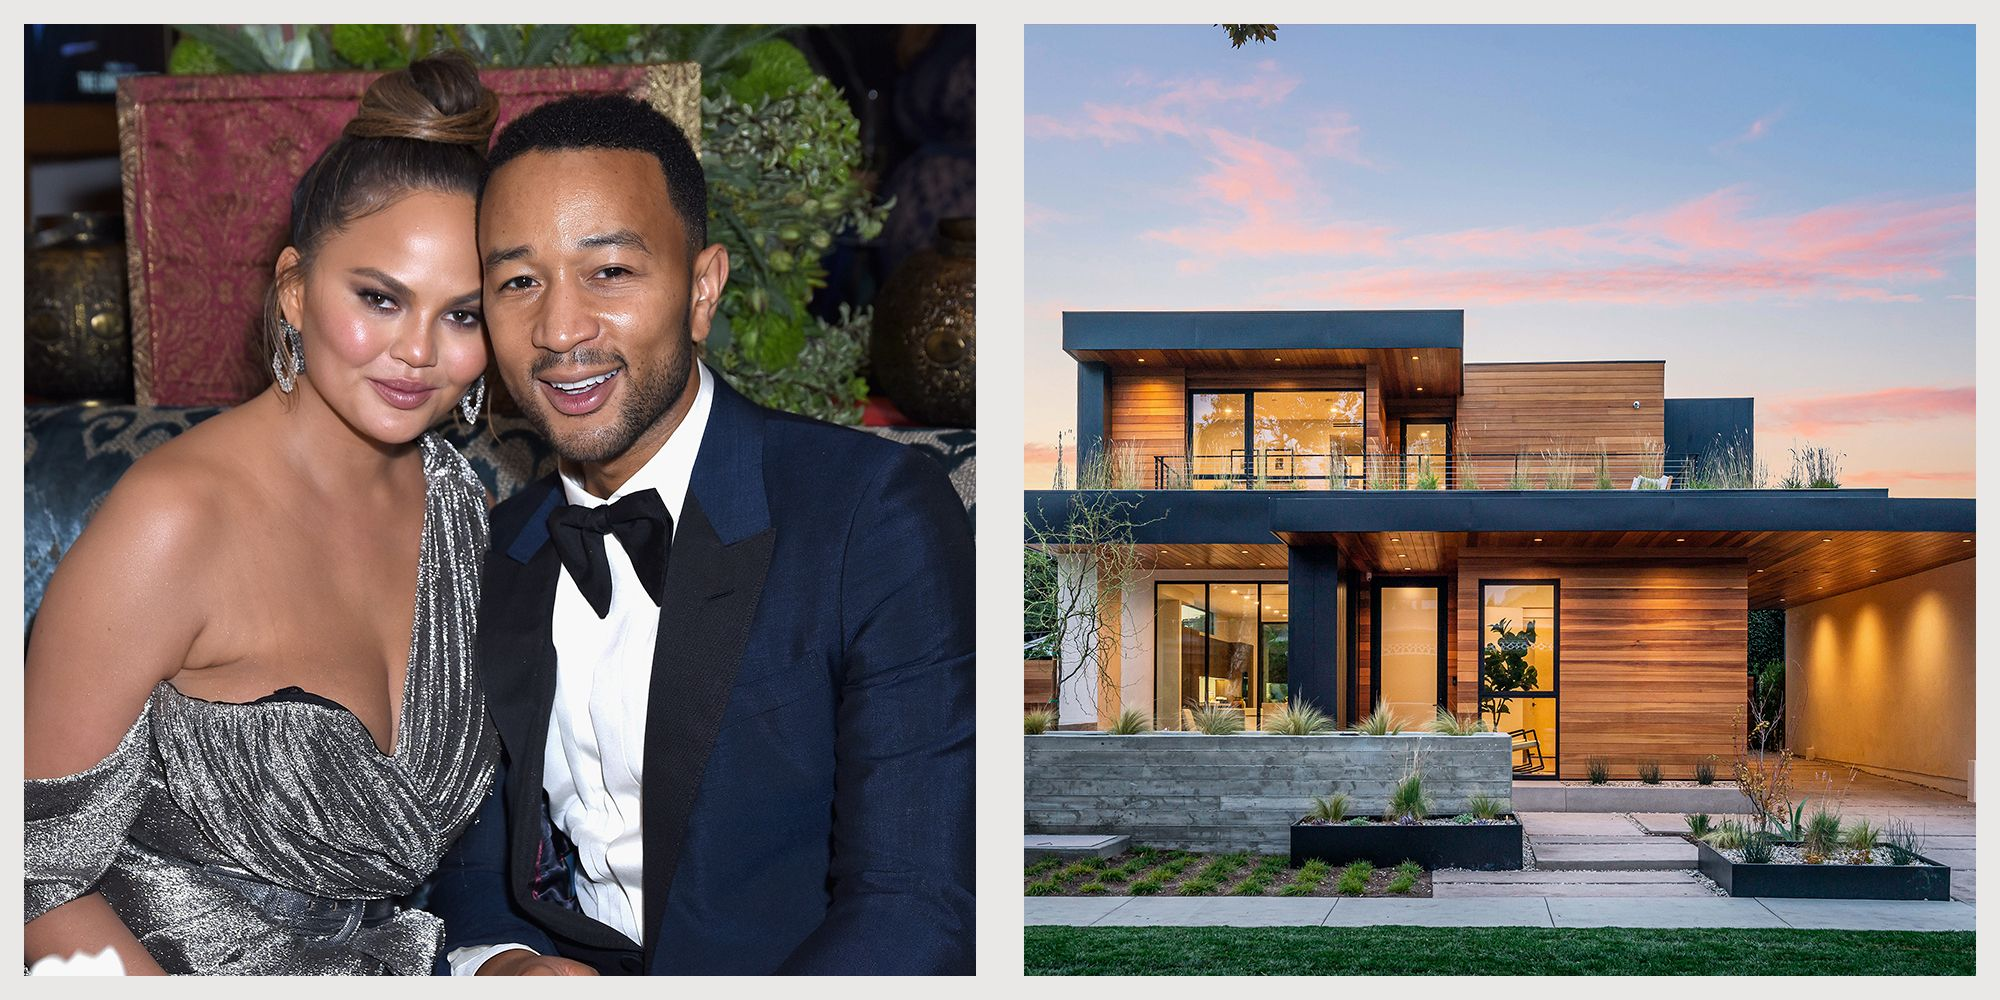 John Legend and Chrissy Teigen Just Bought a New West Hollywood Home